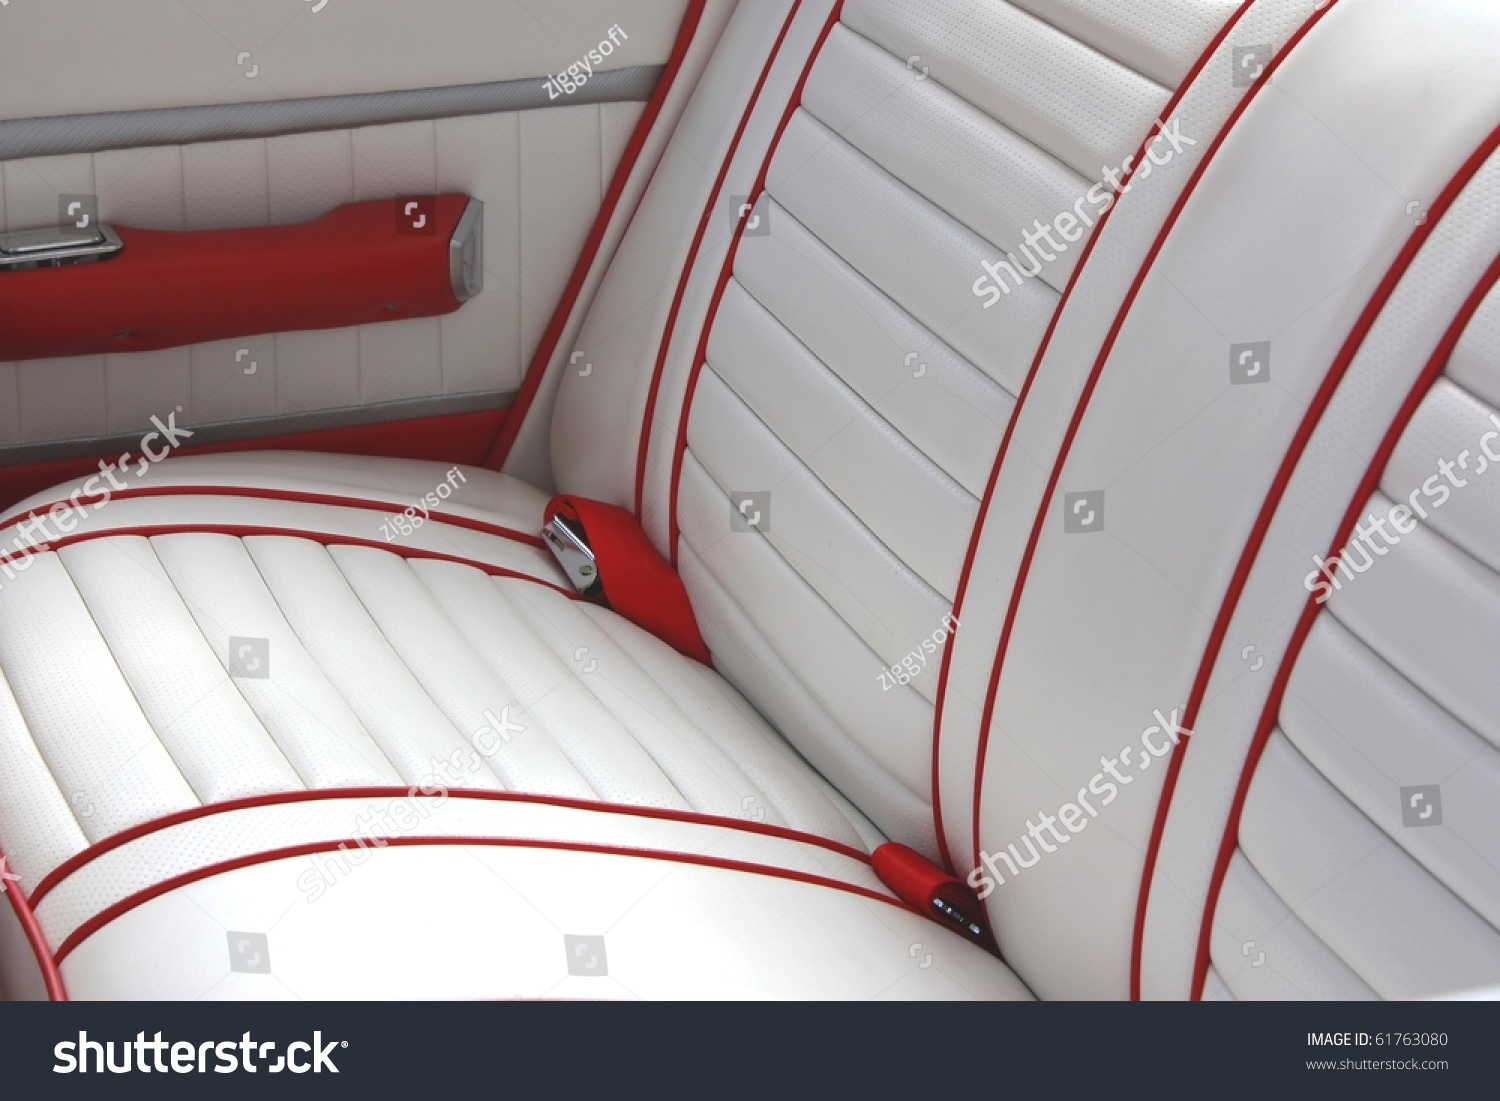 red and white leather car interior stock photo 61763080 shutterstock. Black Bedroom Furniture Sets. Home Design Ideas